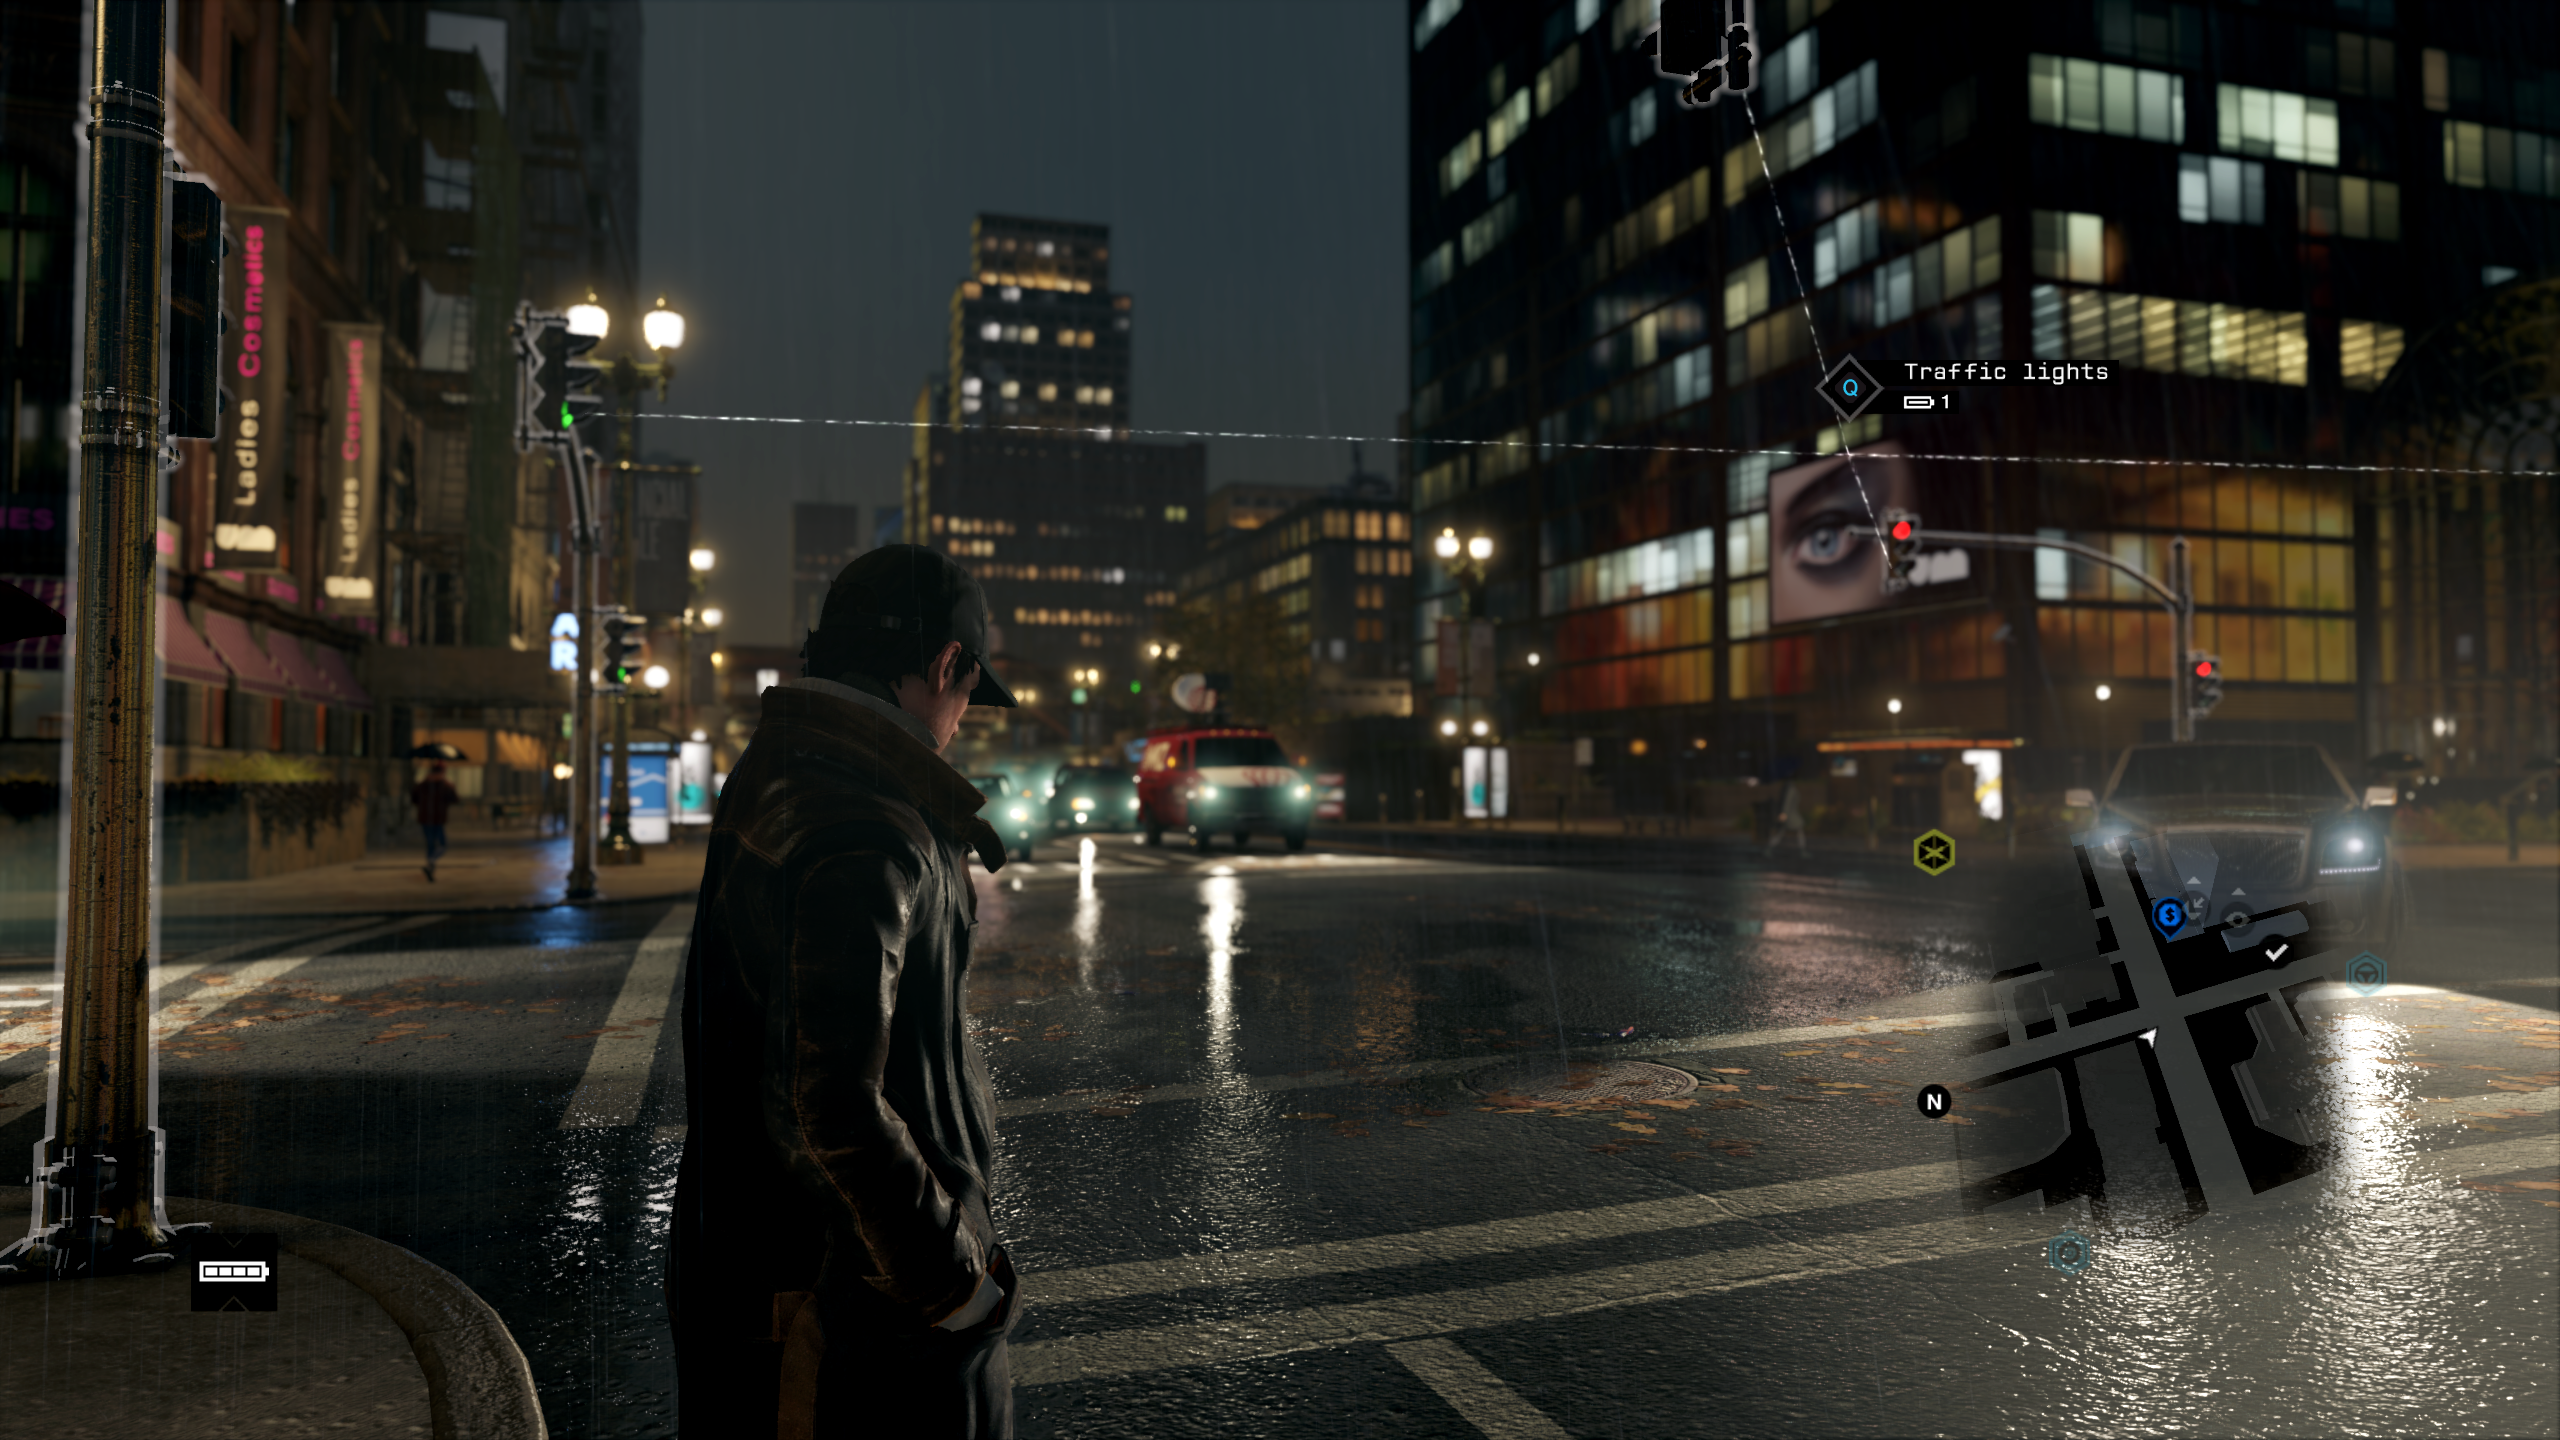 Watch_Dogs_2014_06_27_15_36_31_034.png